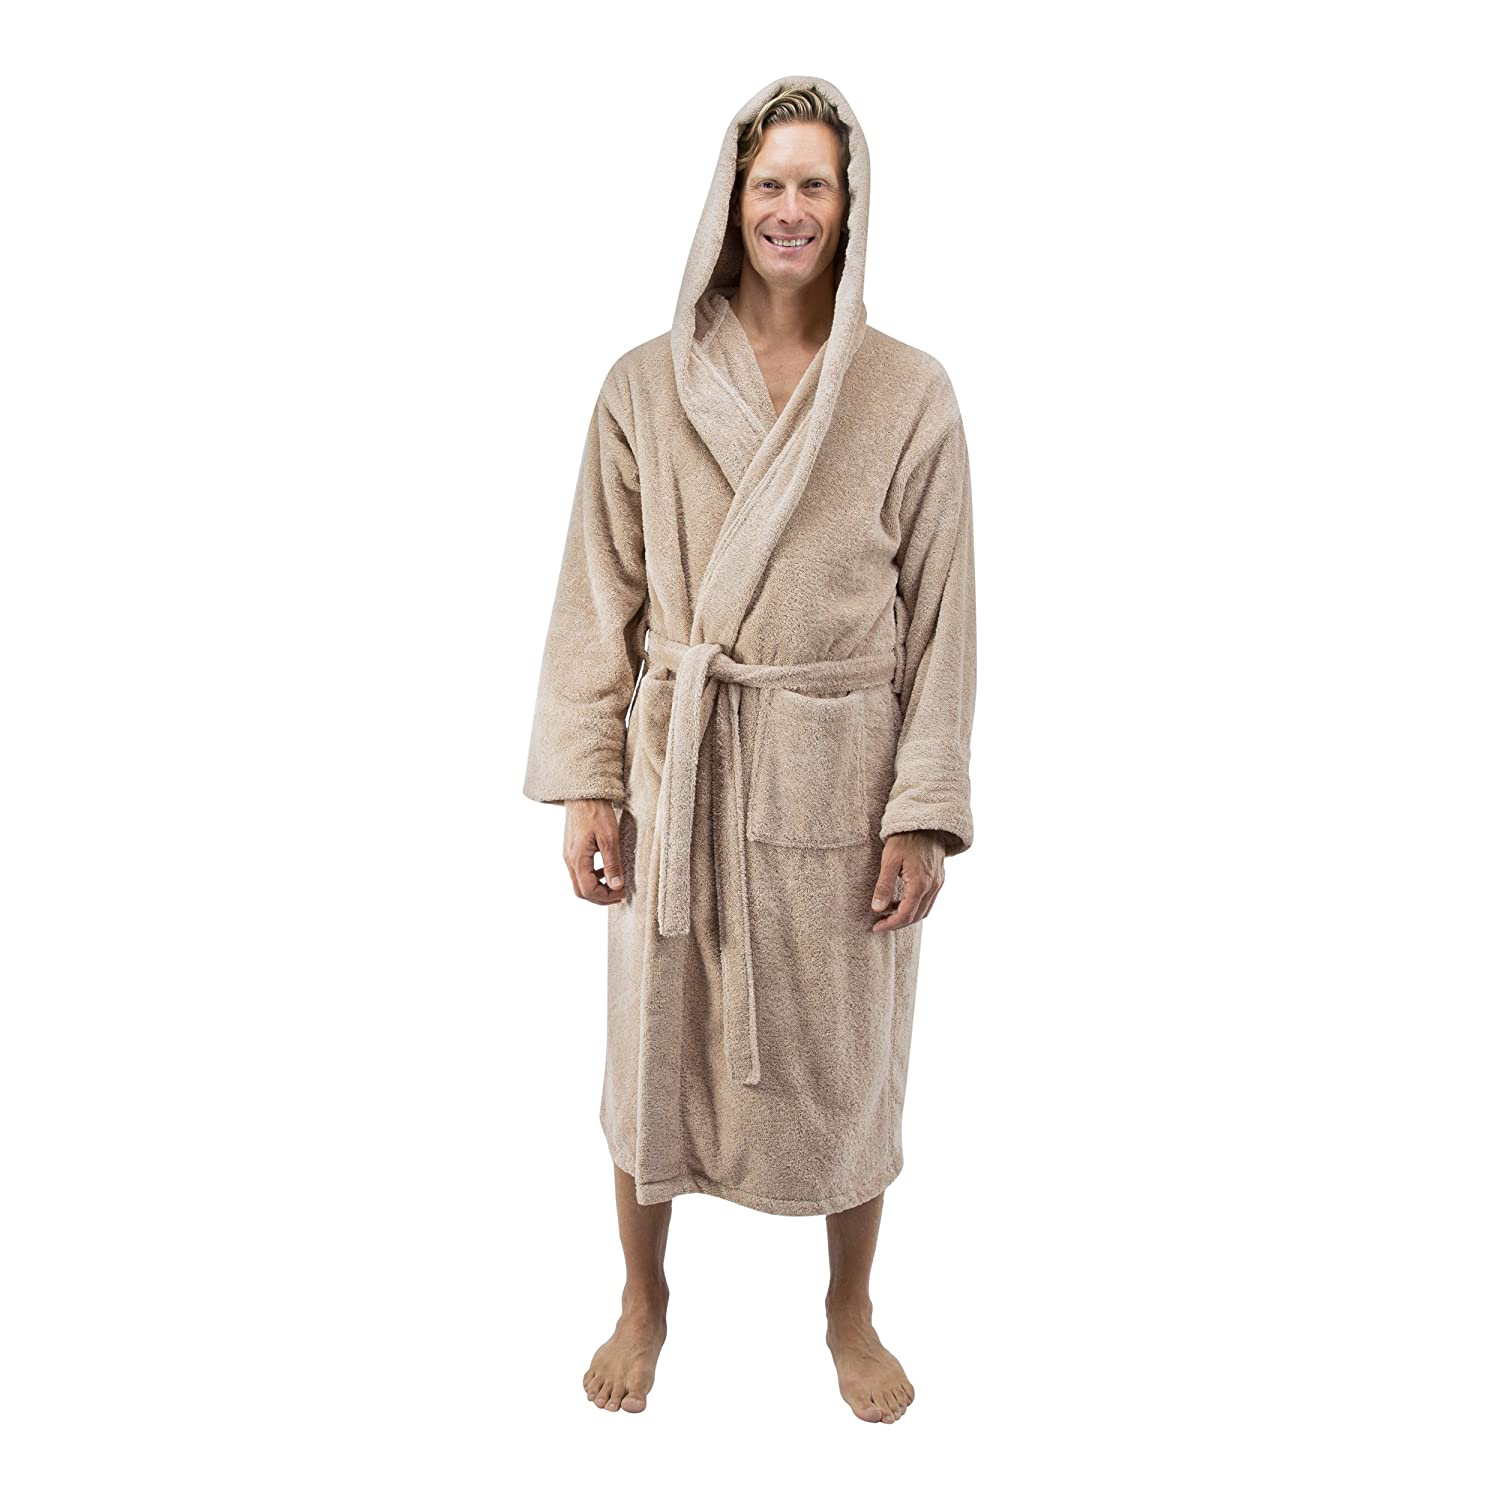 704cf368d8 Comfy Robes Personalized Men s Deluxe 20 oz. Turkish Cotton Hooded Bathrobe  at Amazon Men s Clothing store